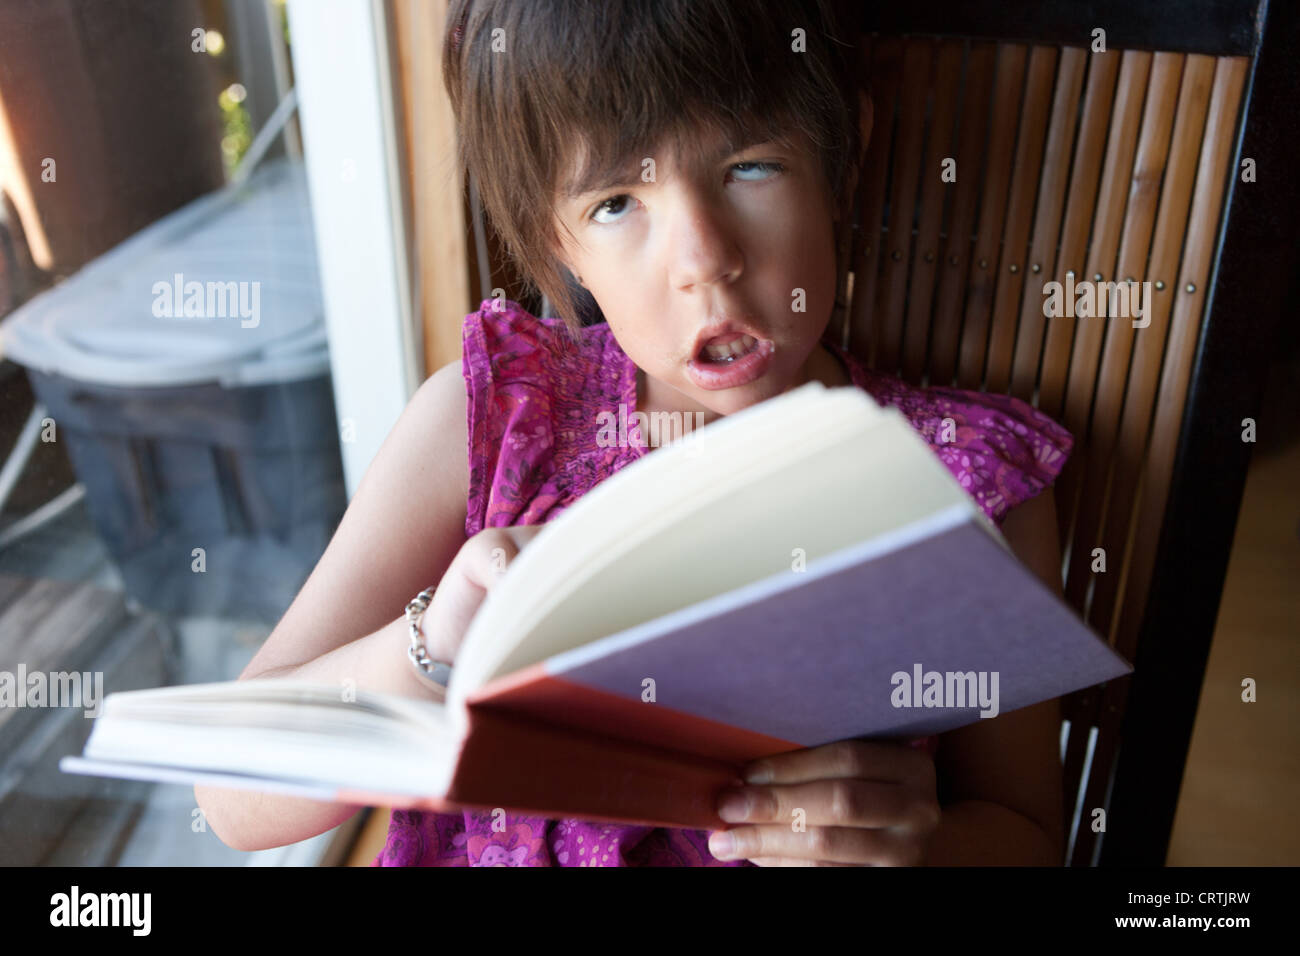 An eight year old girl with myotonic muscular dystrophy holding a book in her hand and asking about the meaning - Stock Image